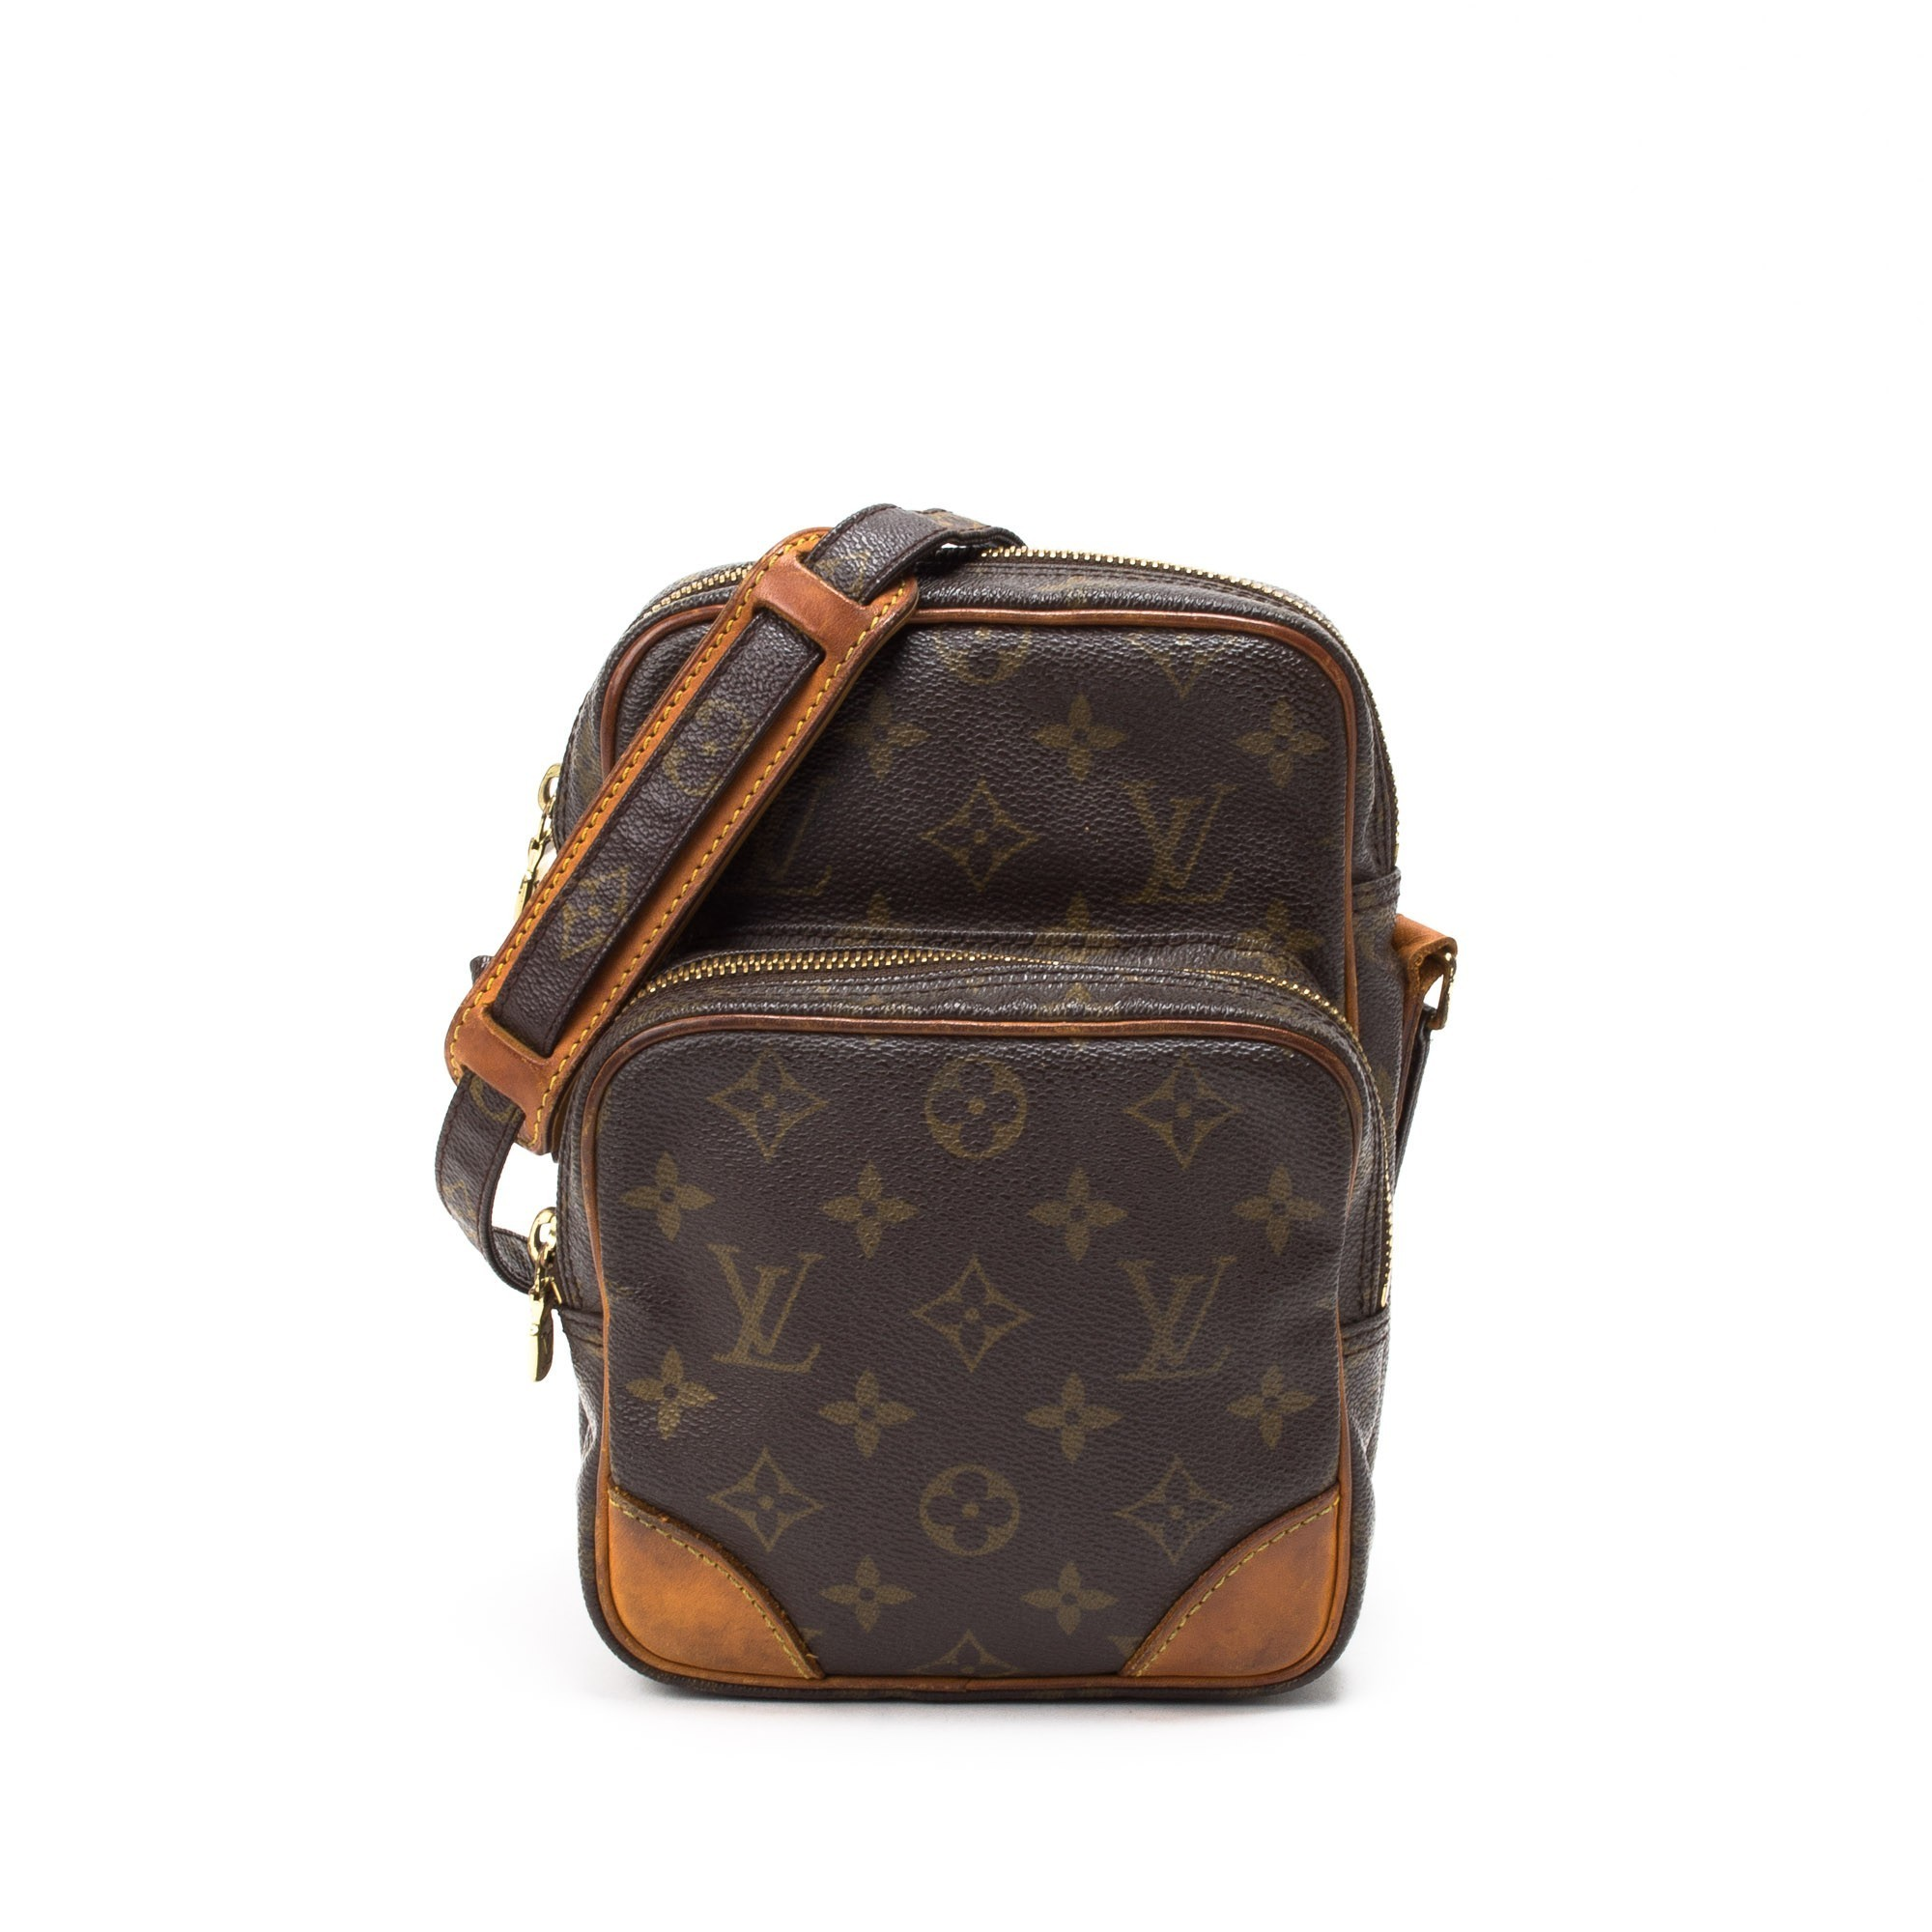 hermes messenger - Louis Vuitton Amazon Monogram Brown Coated Canvas Shoulder Bag ...